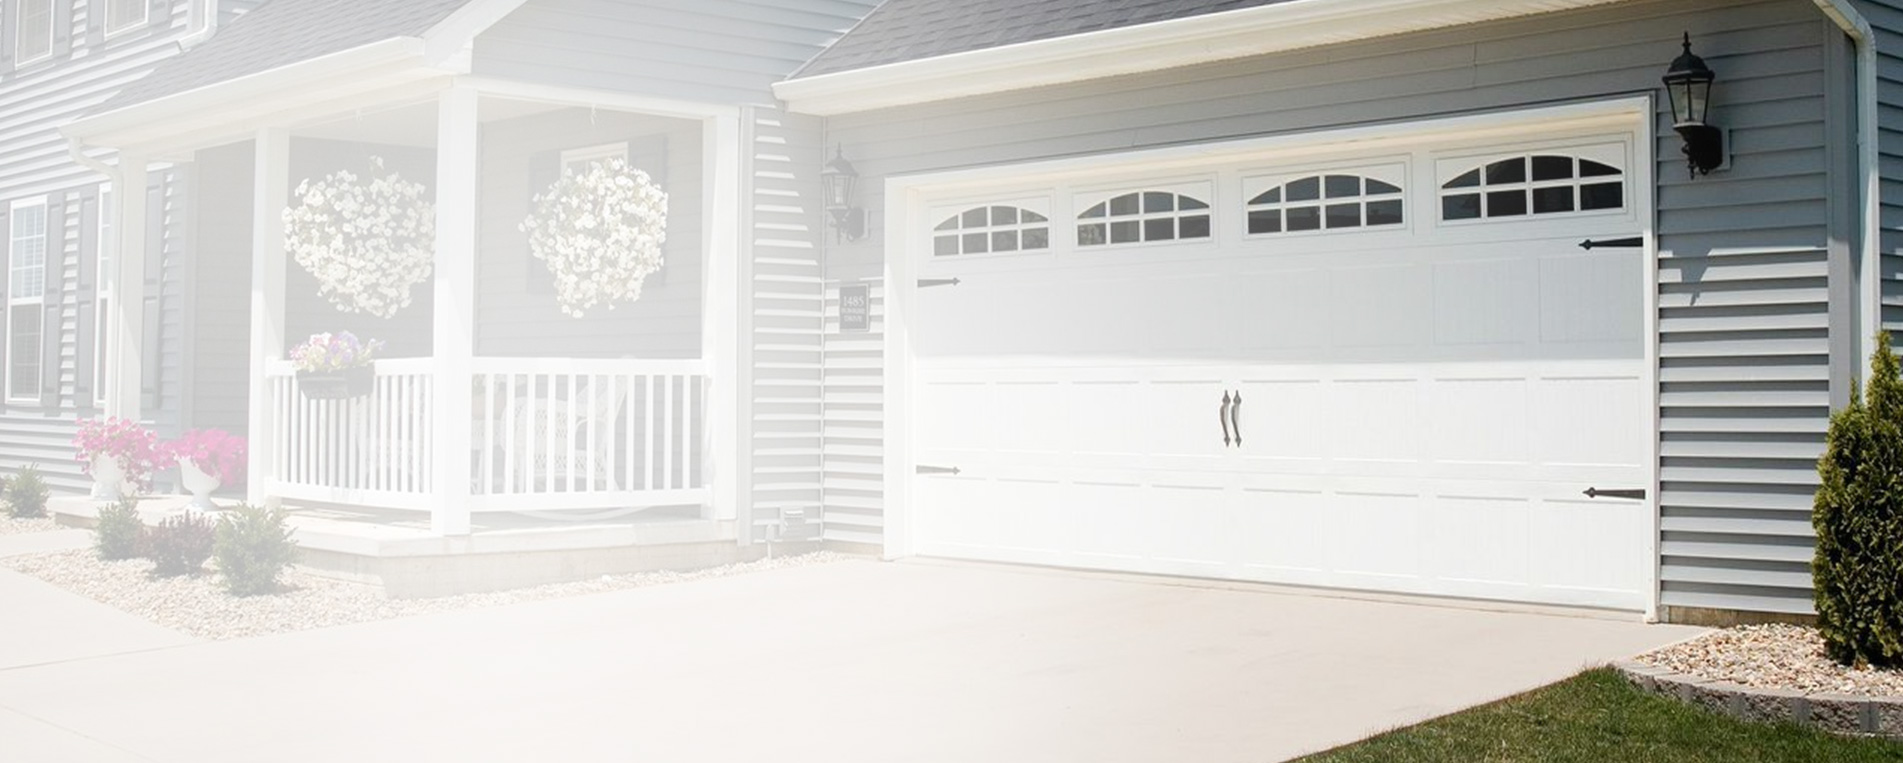 Garage Door Repair Aurora, CO